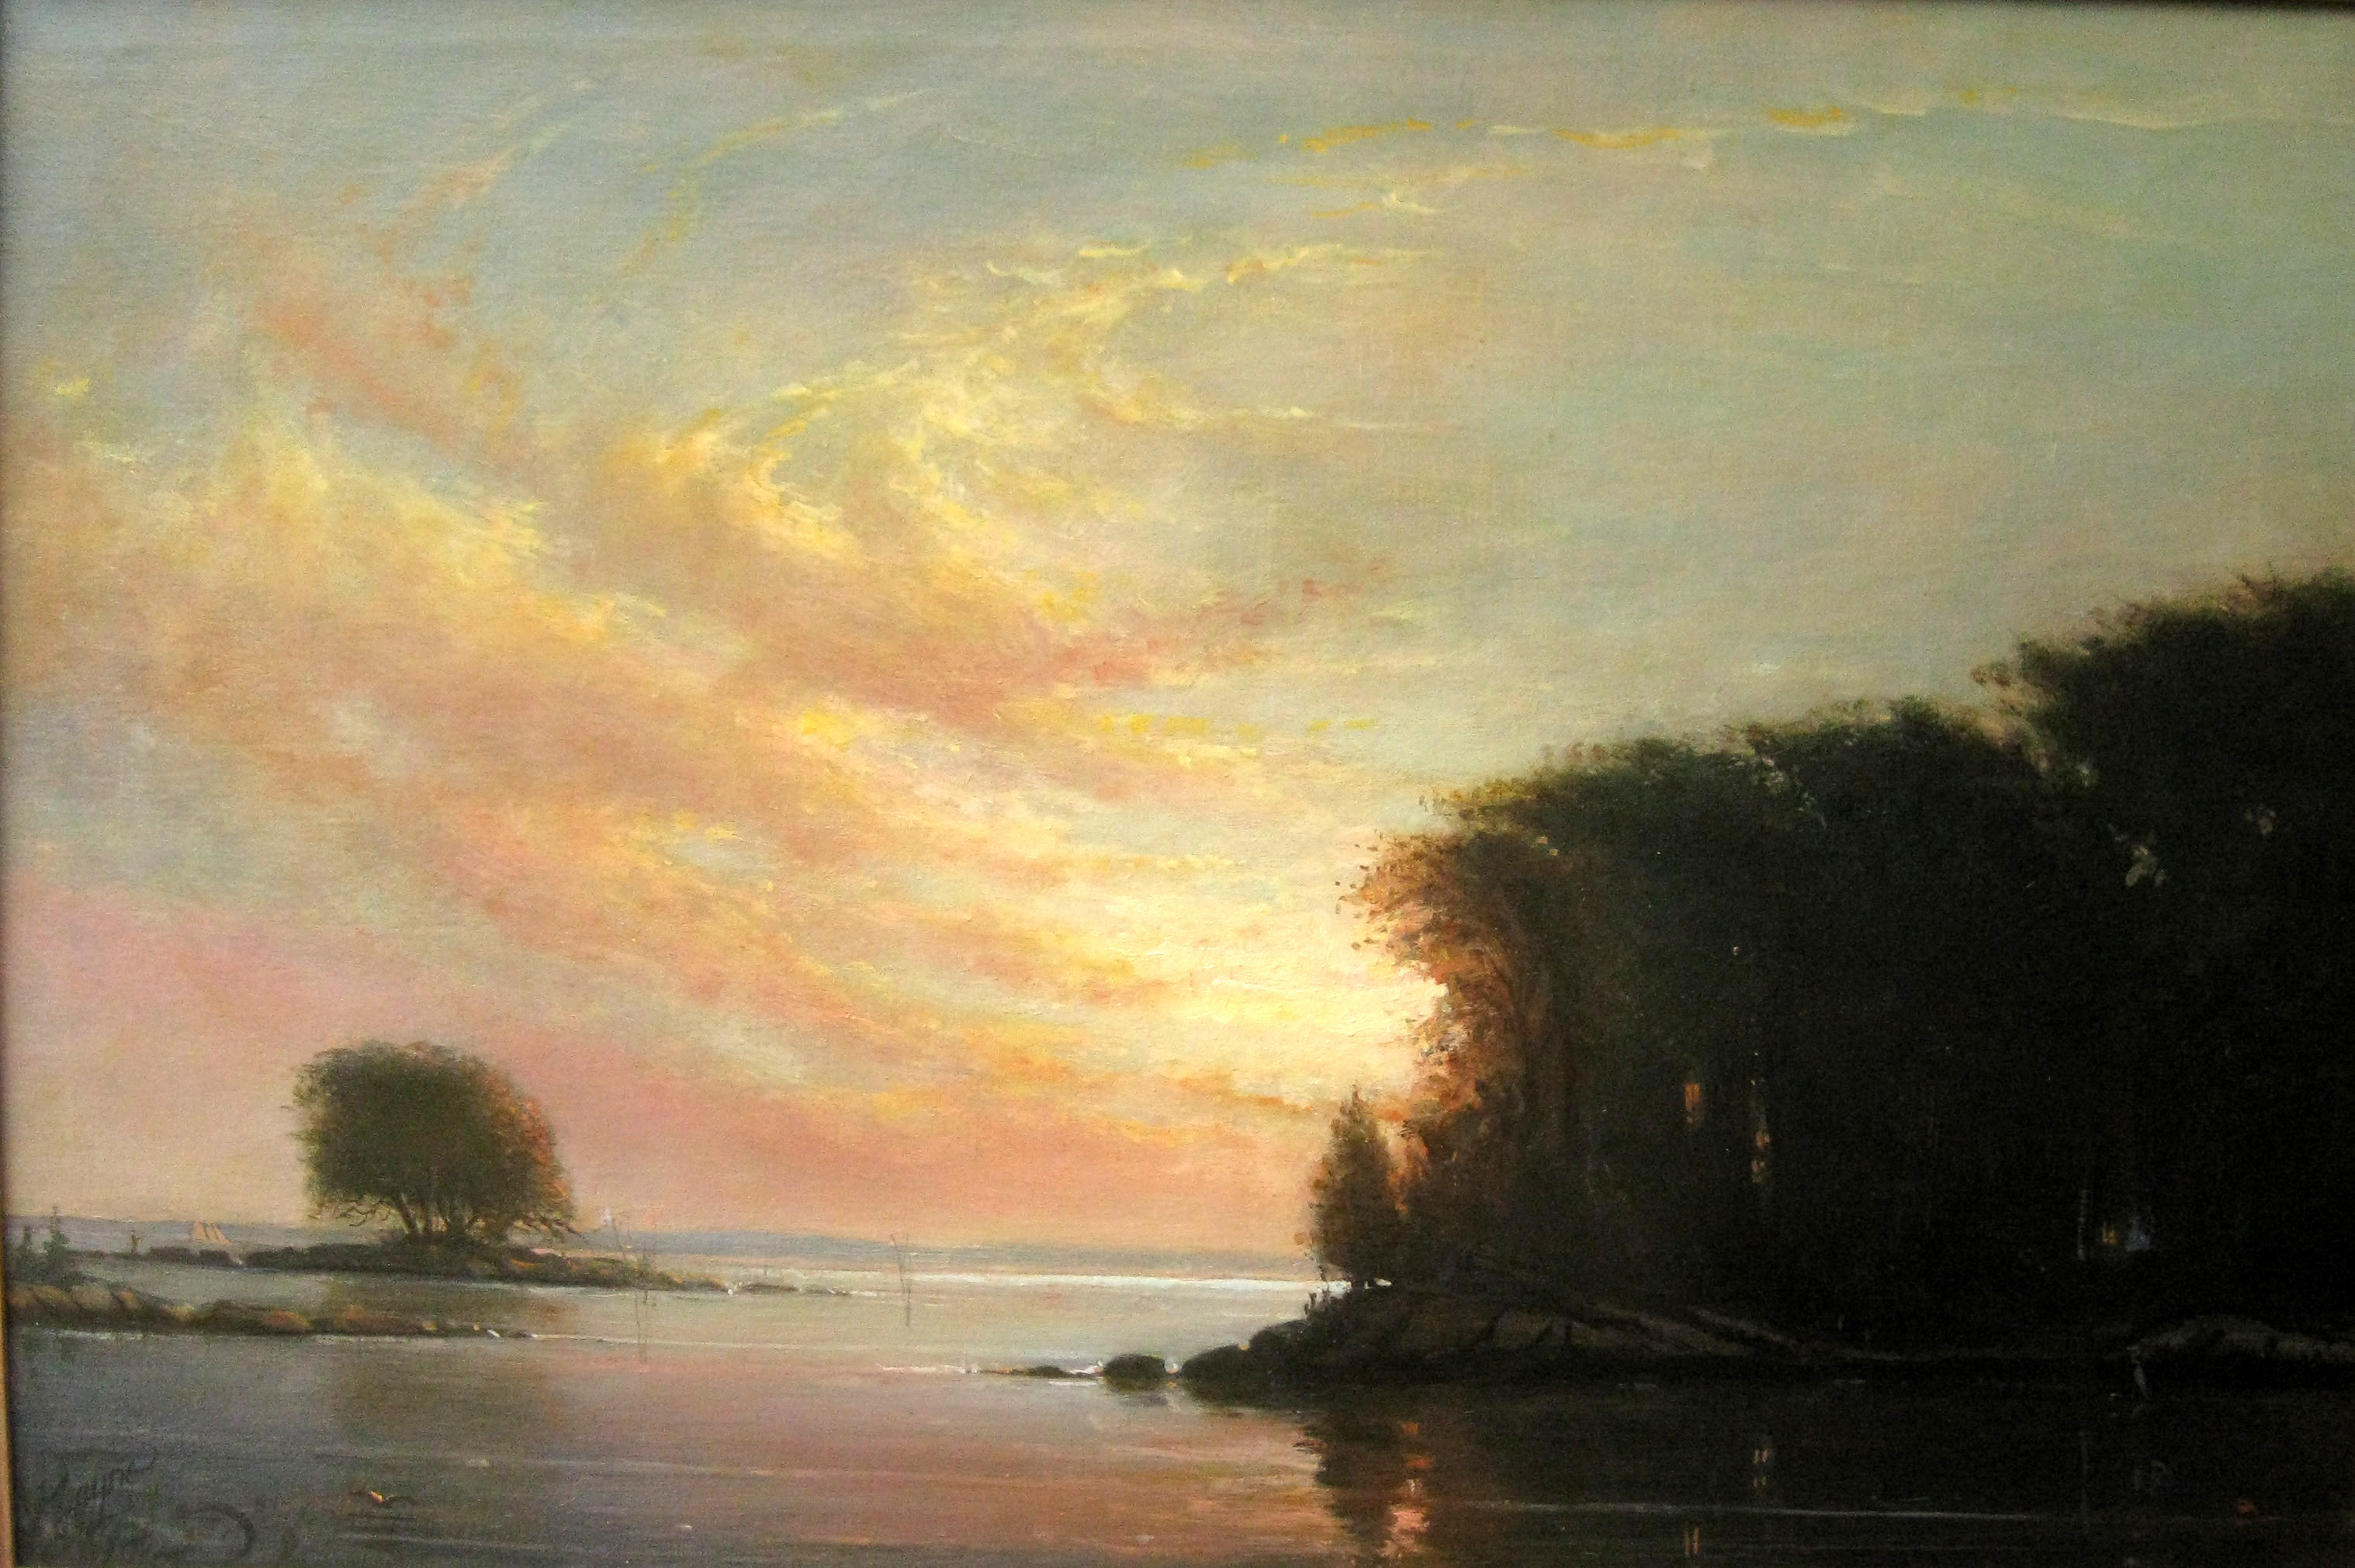 Fish Island Sunset, Darien - 24x36